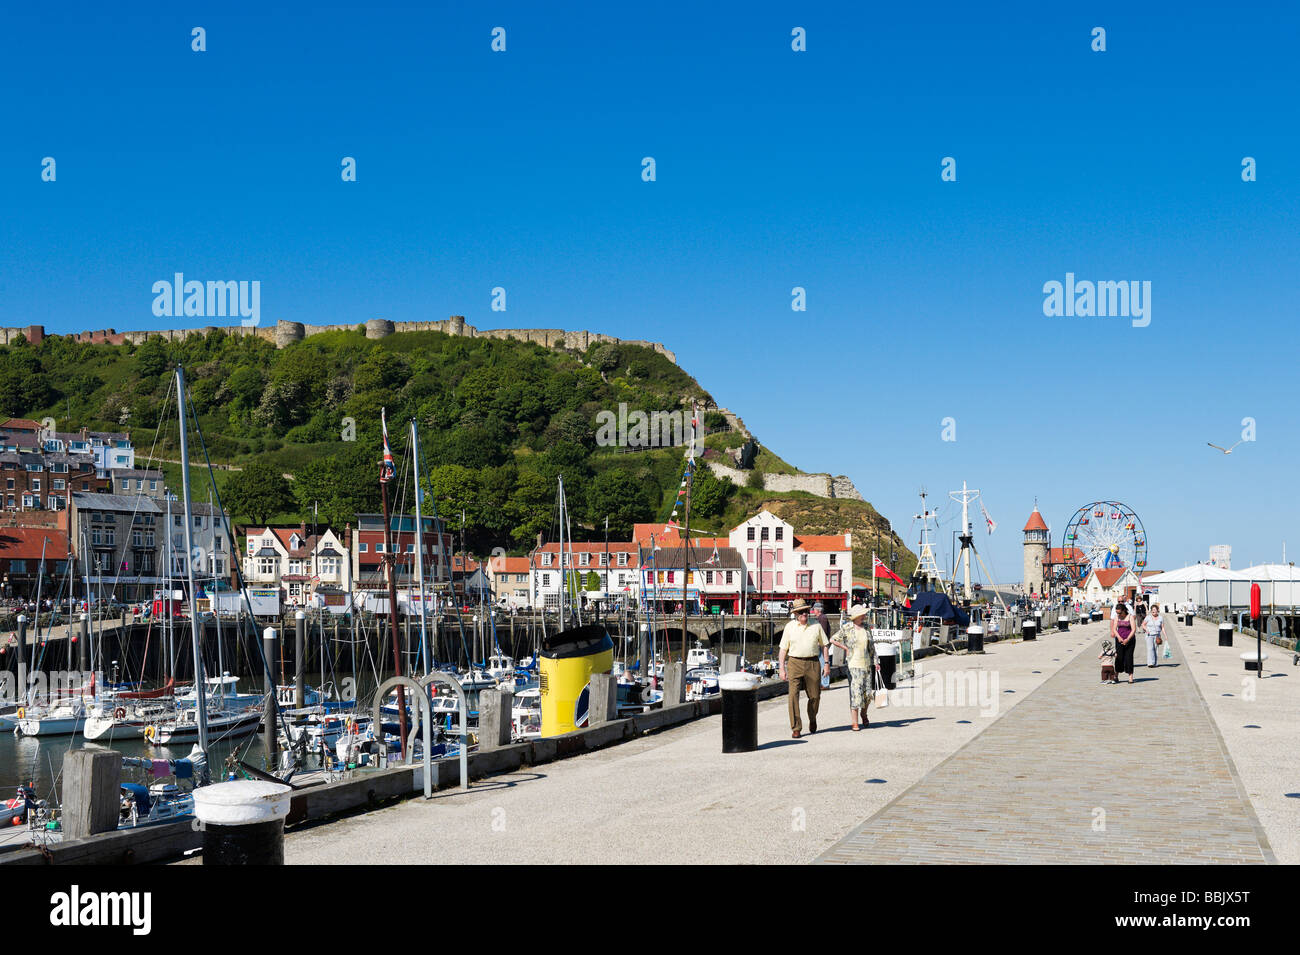 Castle and old town from the quayside, Scarborough, East Coast, North Yorkshire, England - Stock Image